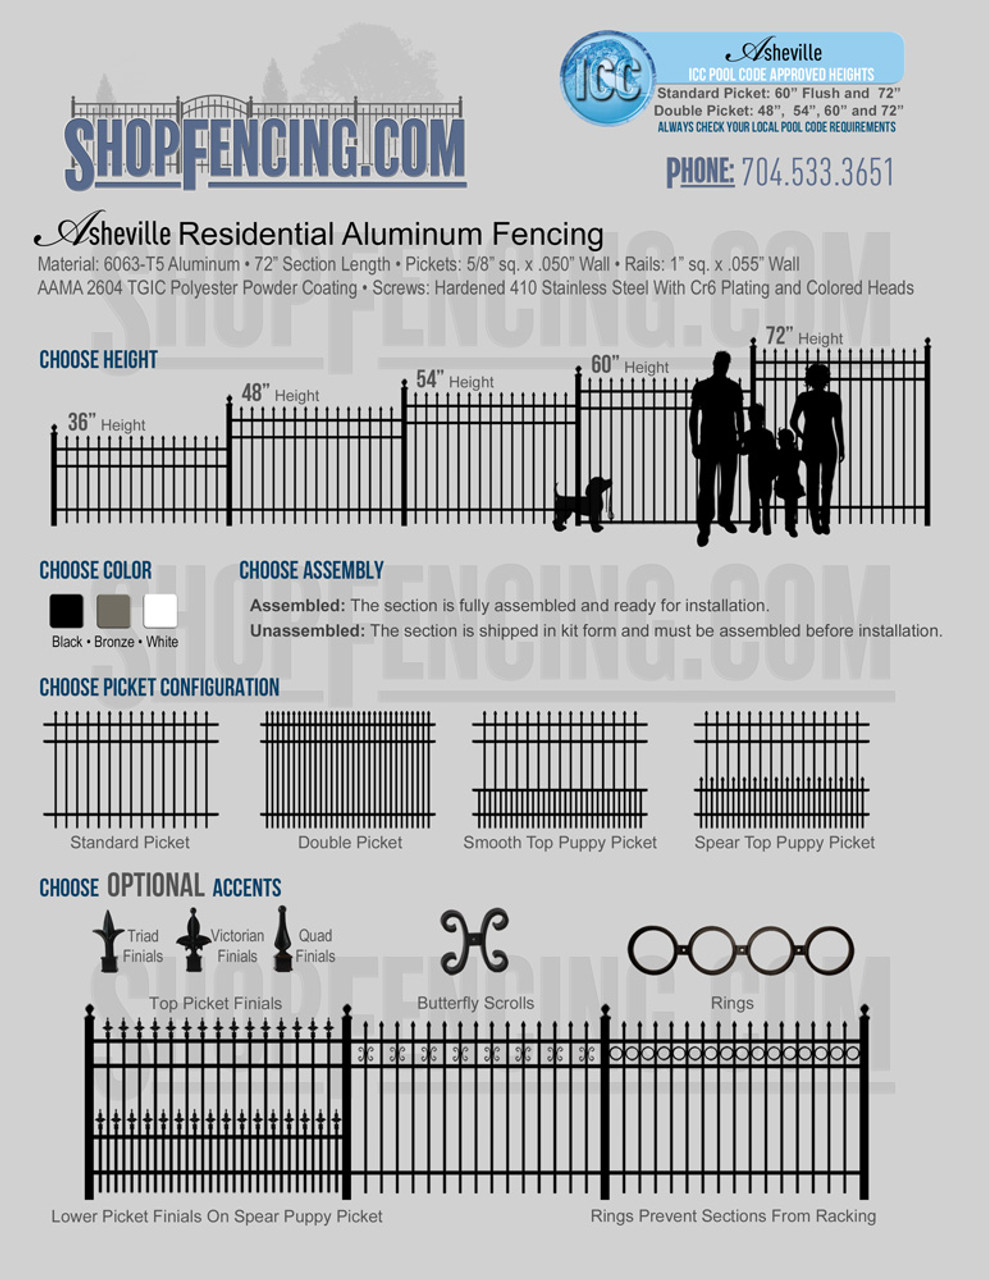 Residential Asheville Aluminum Fencing From ShopFencing.com